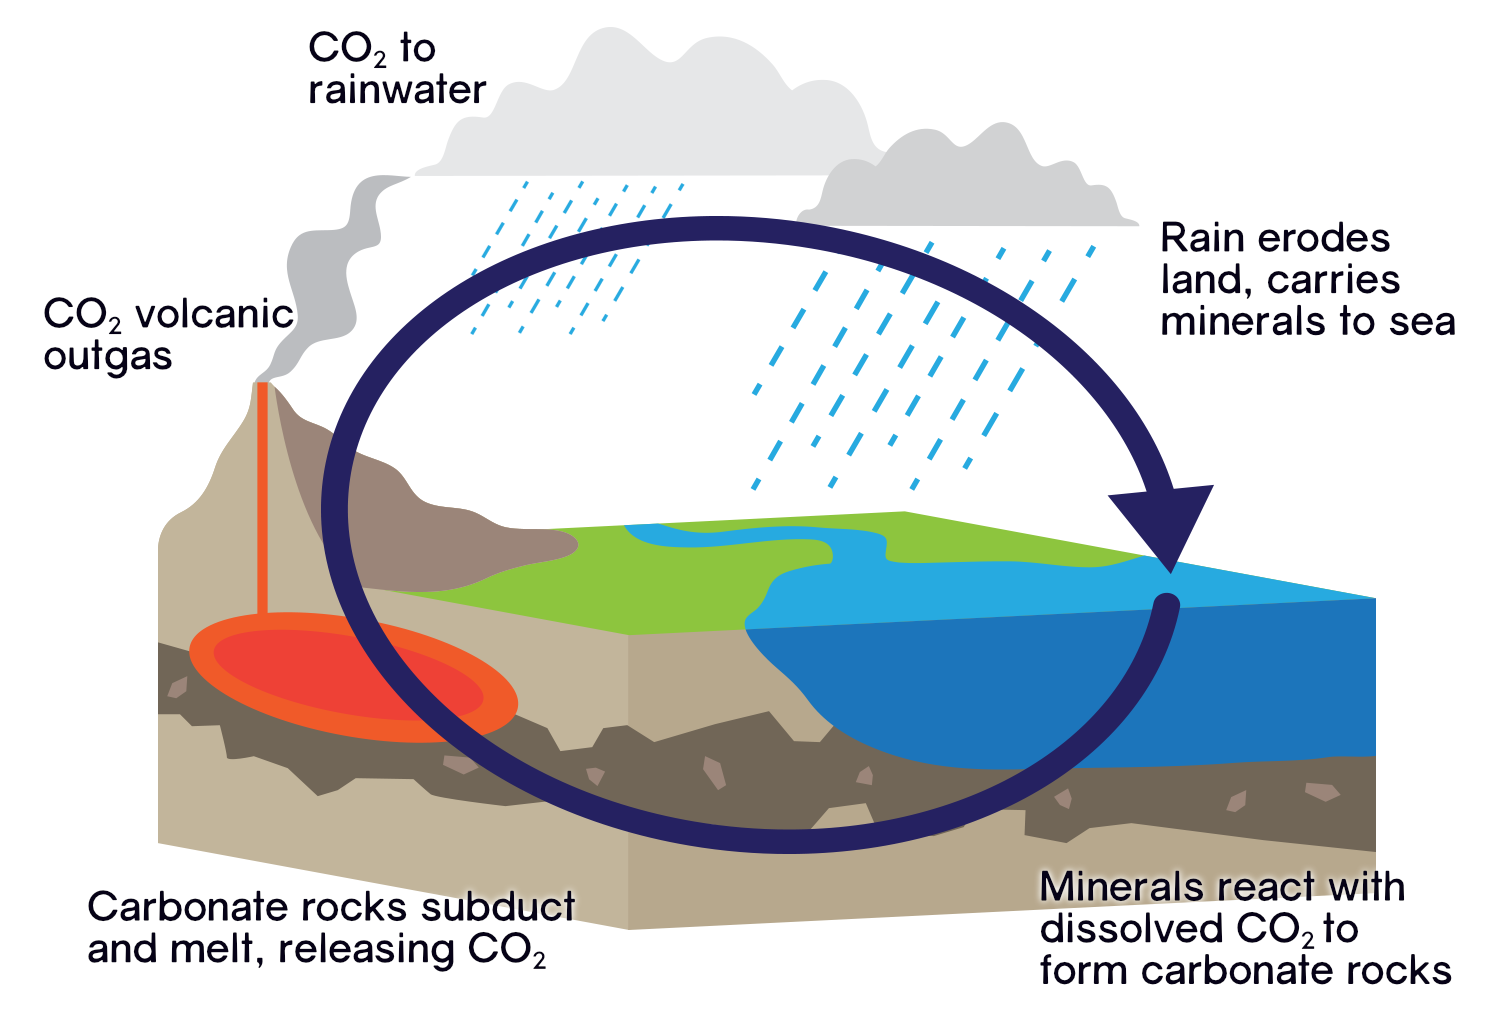 The geological carbon cycle: carbon dioxide released by volcanoes is